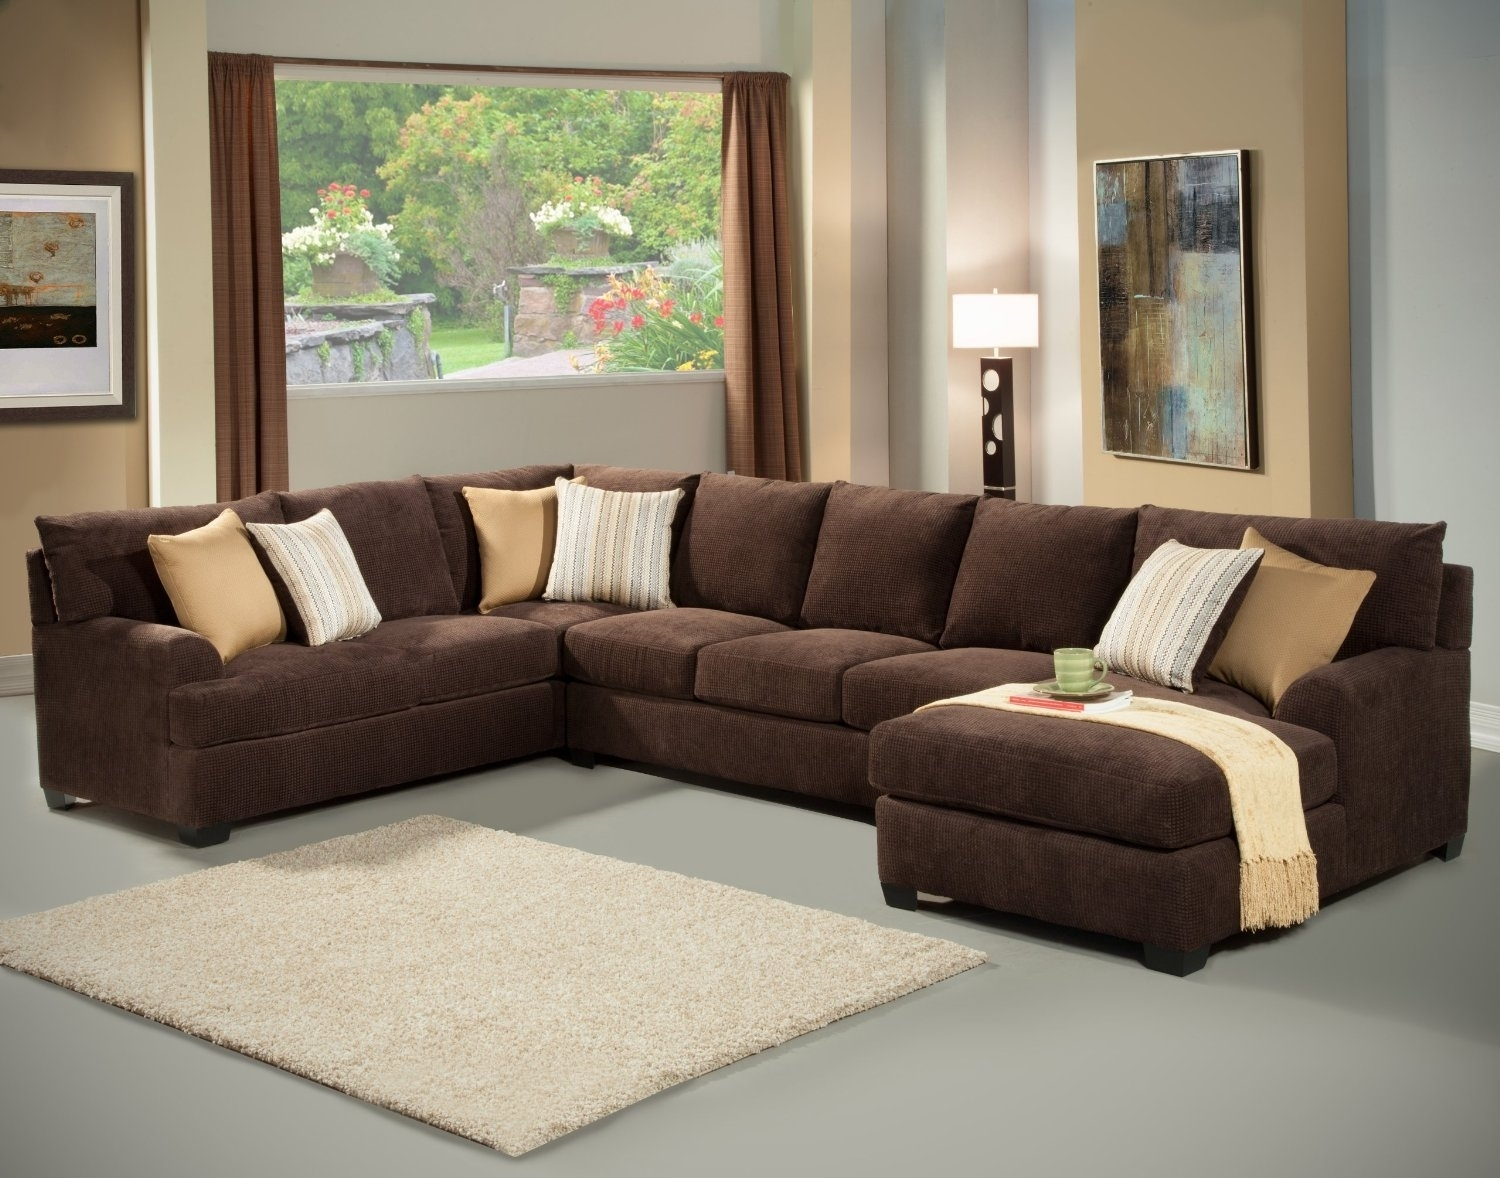 Chocolate Brown Microfiber Sectional Sofa • Sectional Sofa pertaining to Chocolate Brown Sectional Sofas (Image 3 of 10)